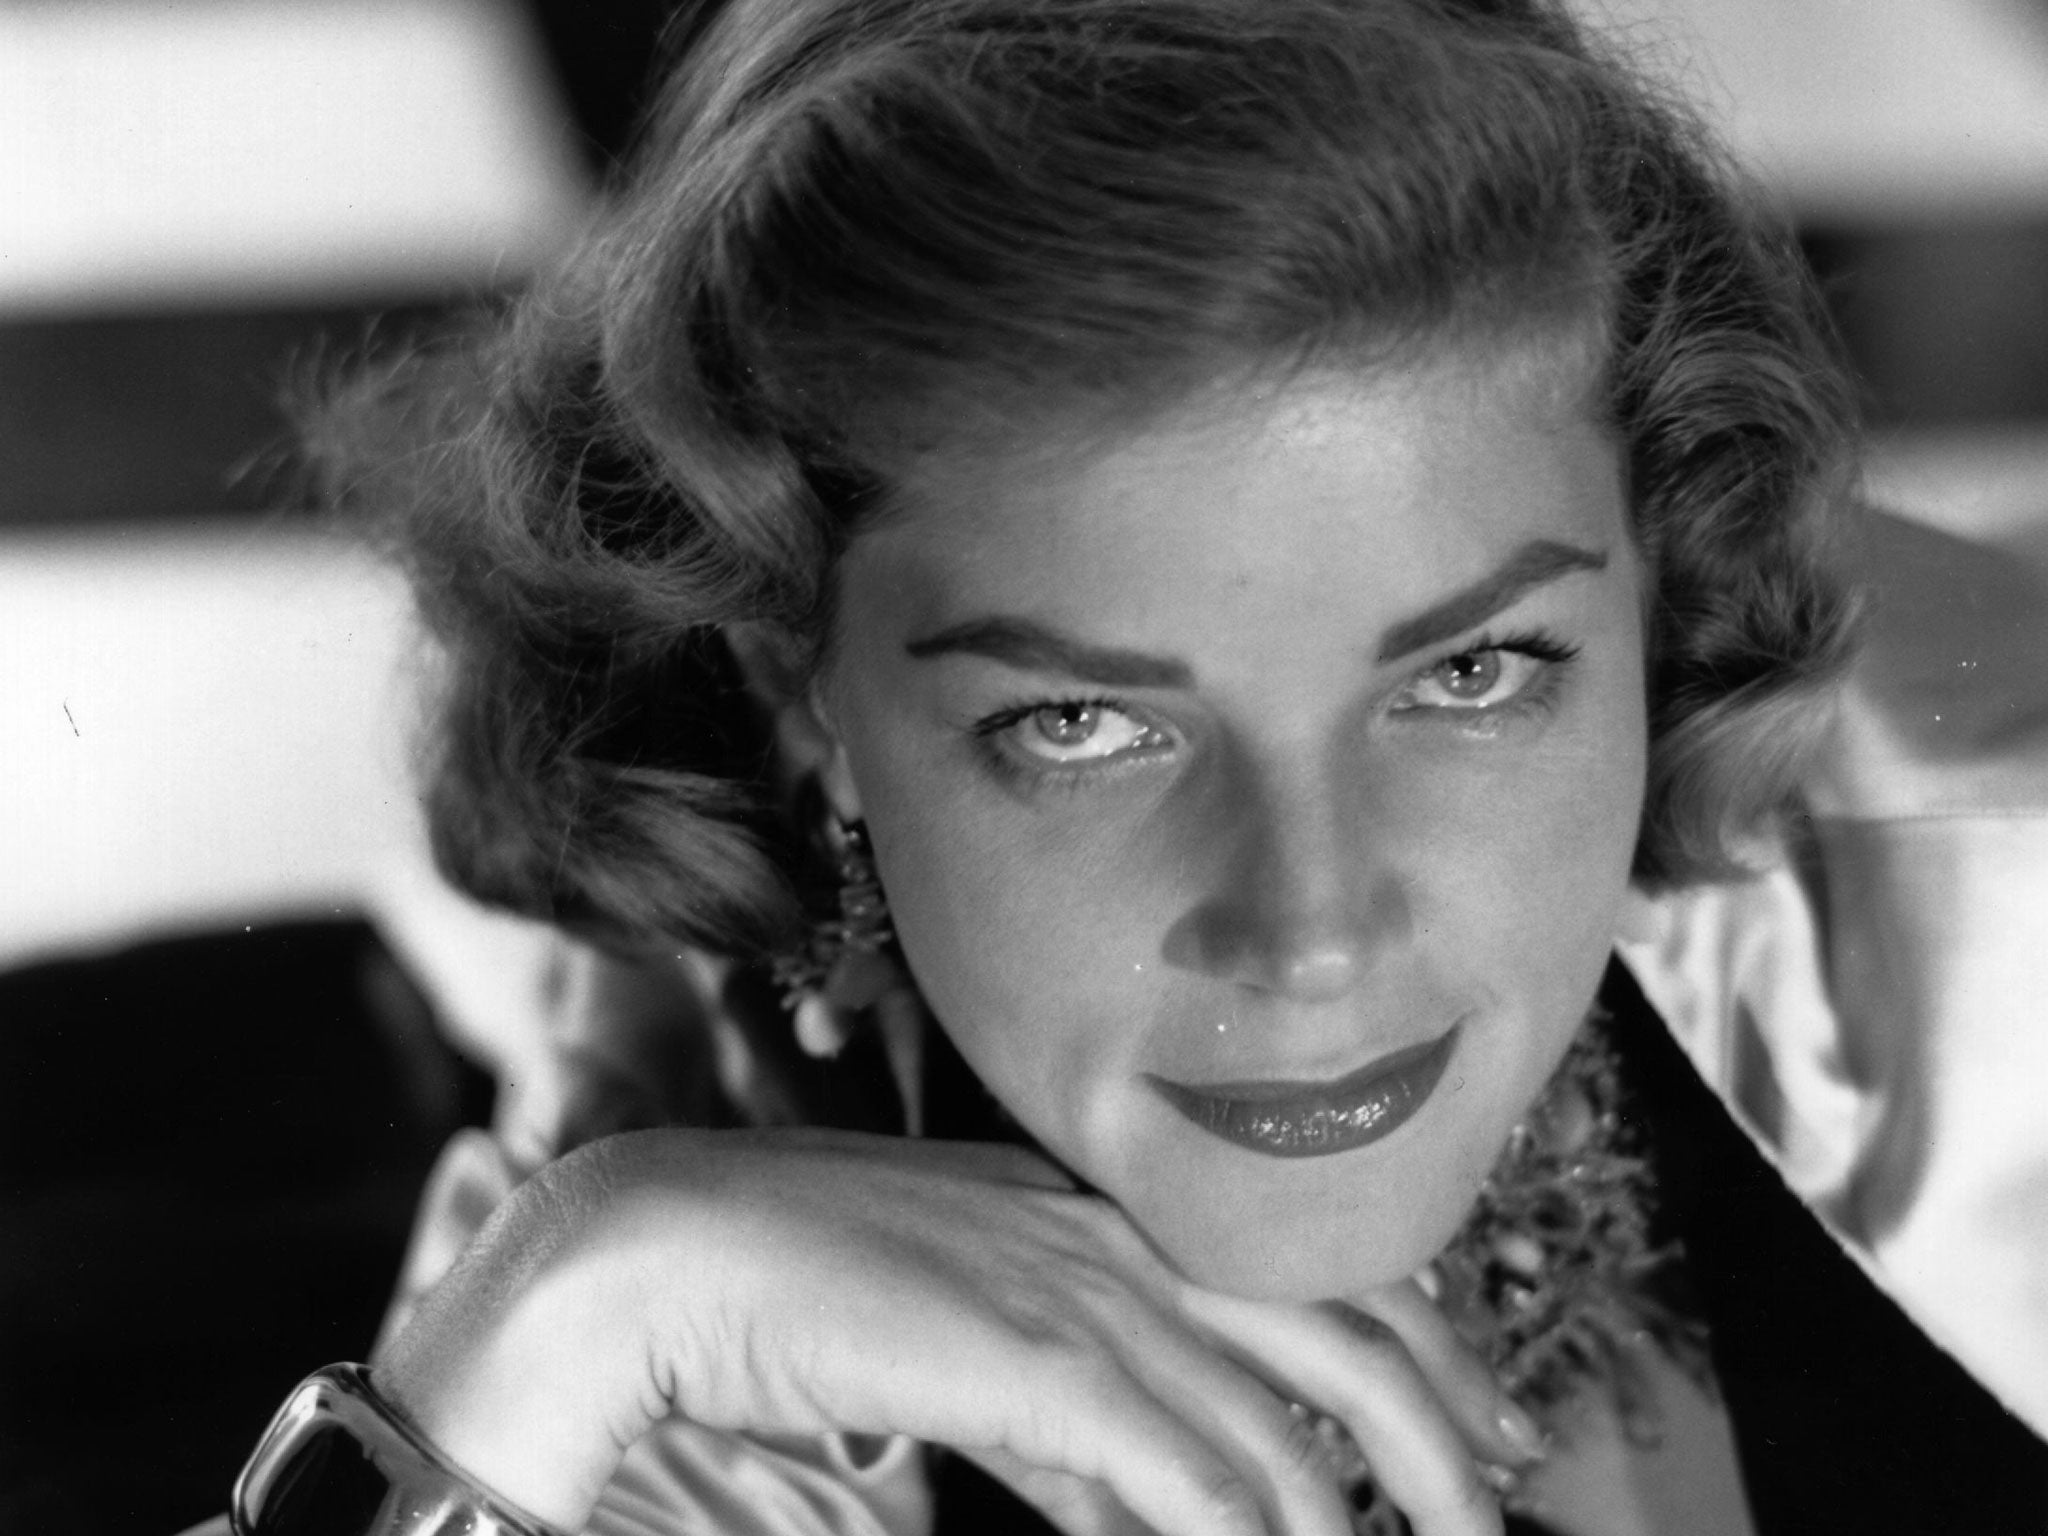 Lauren Bacall Sultry Film Noir Legend Who Taught Humphrey Bogart How To Whistle And Starred With Monroe And Grable The Independent